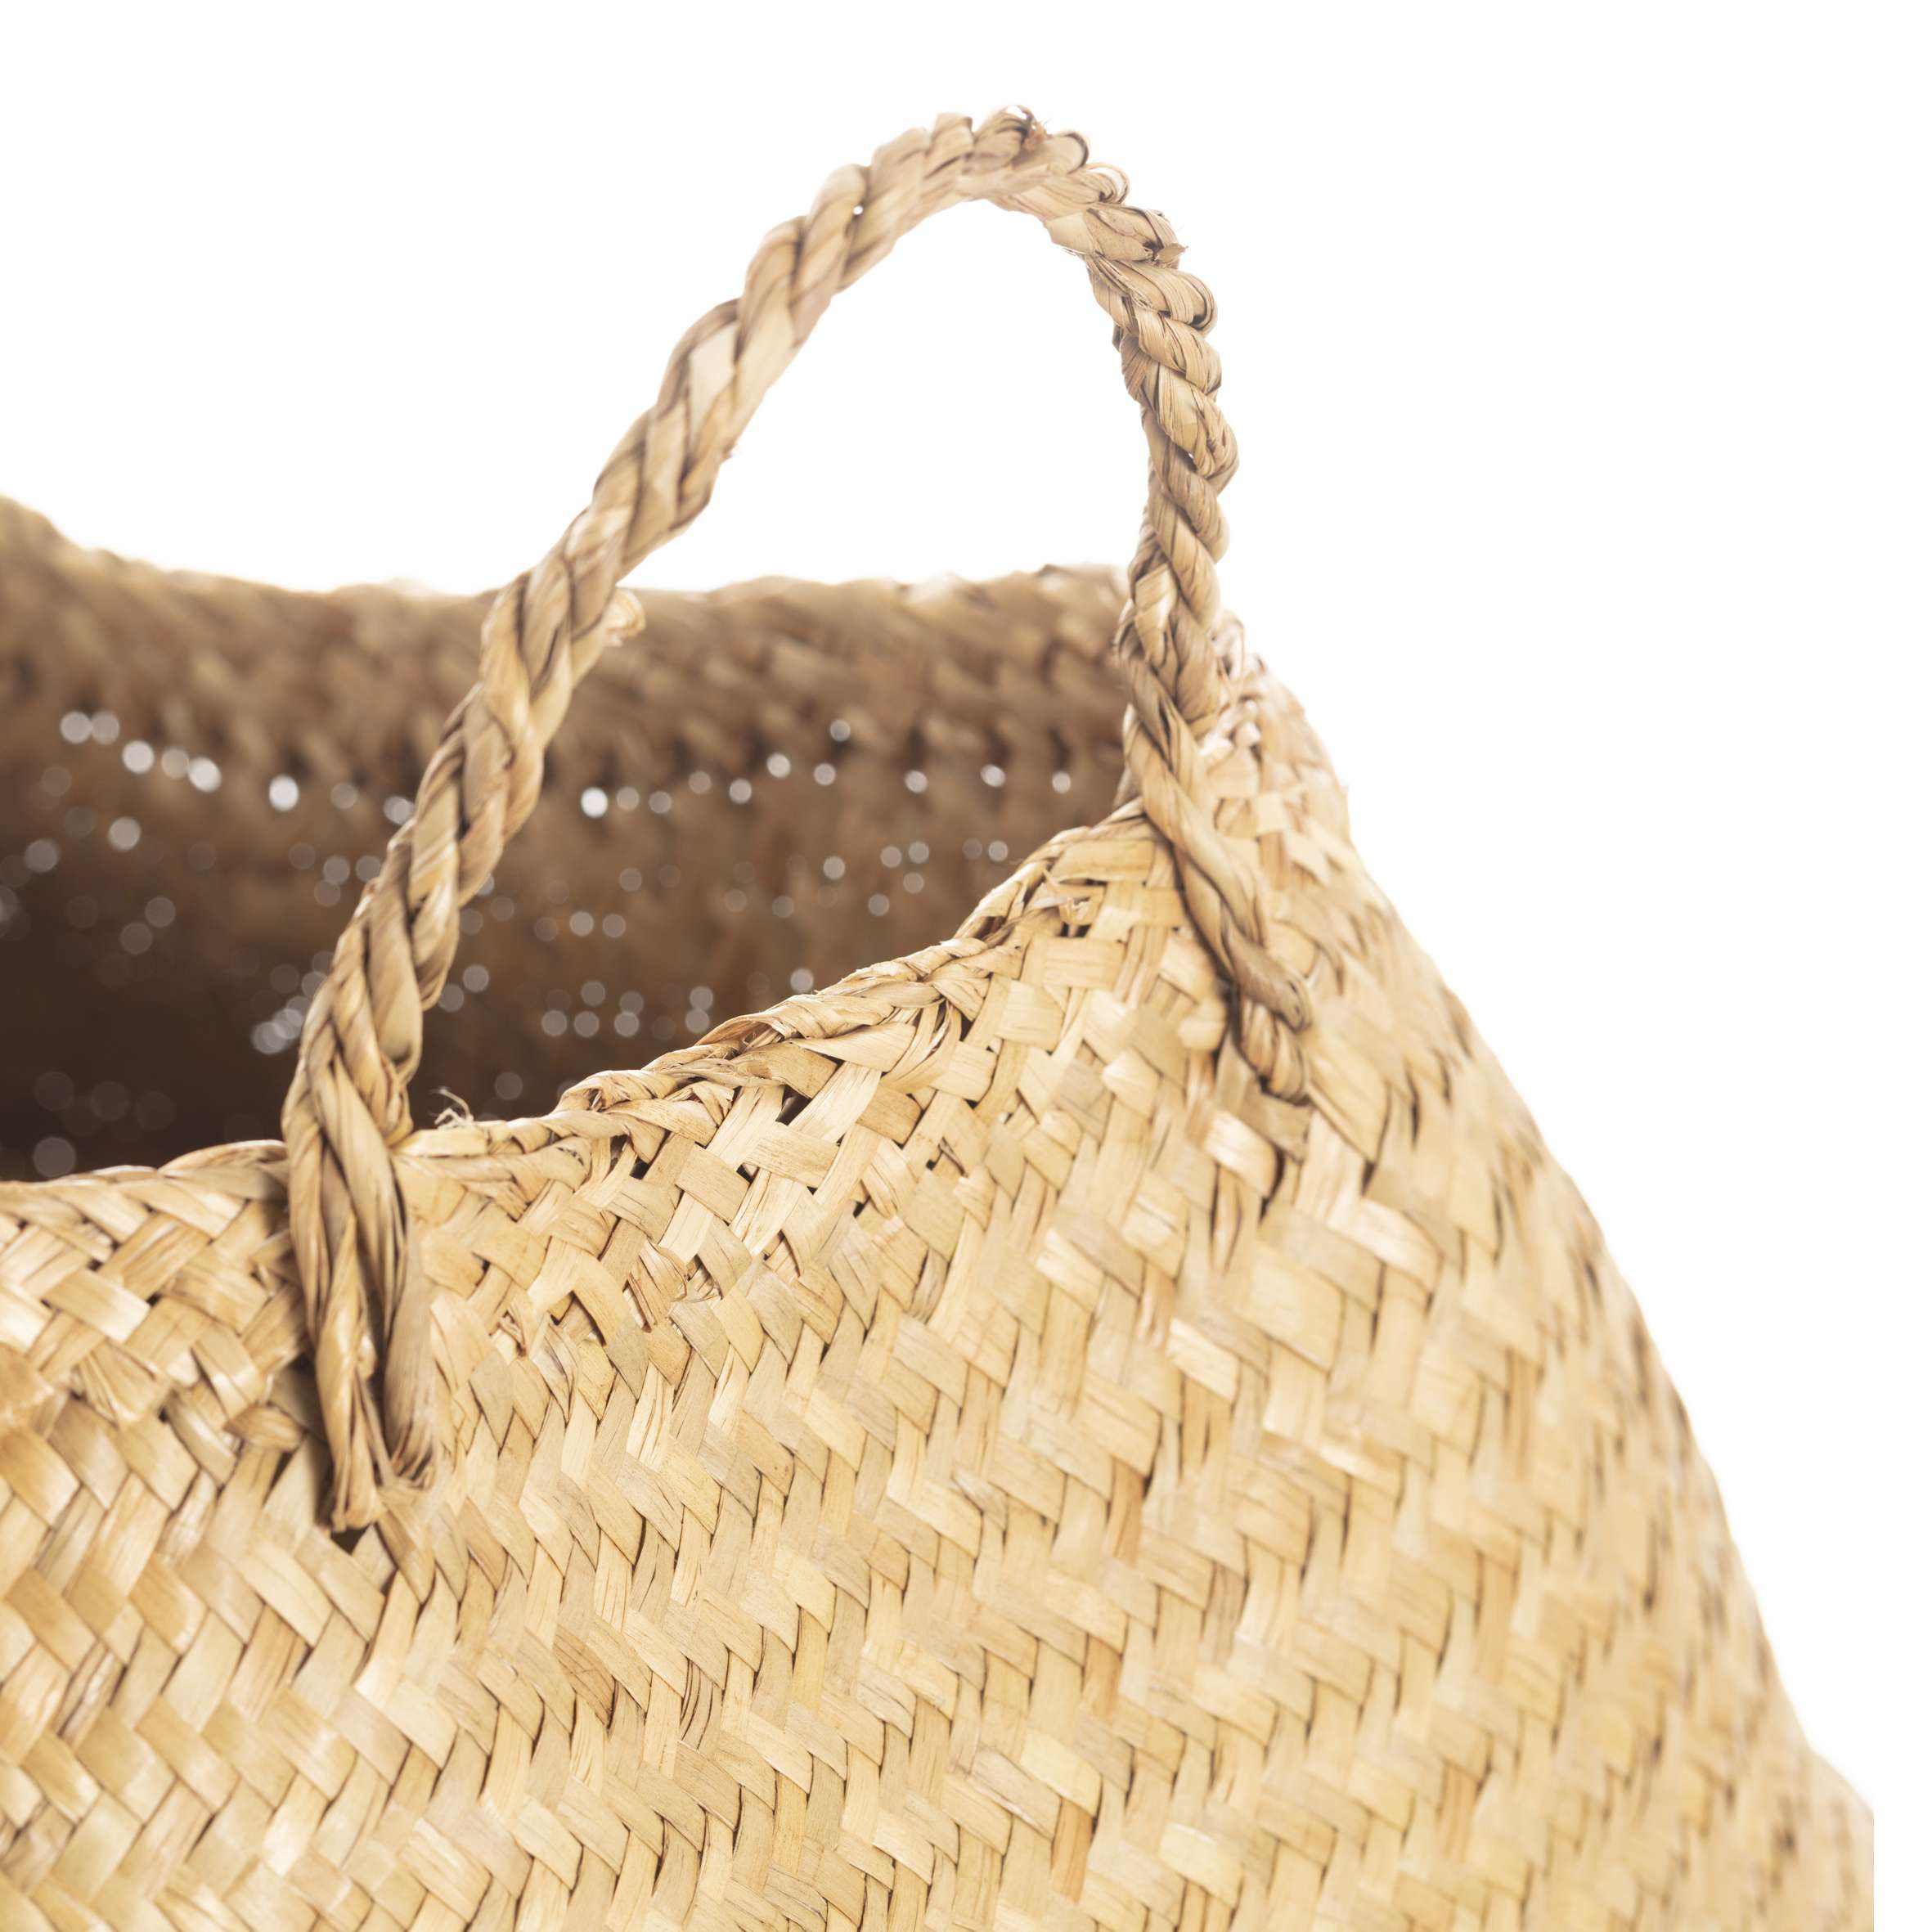 Scandi Natural basket